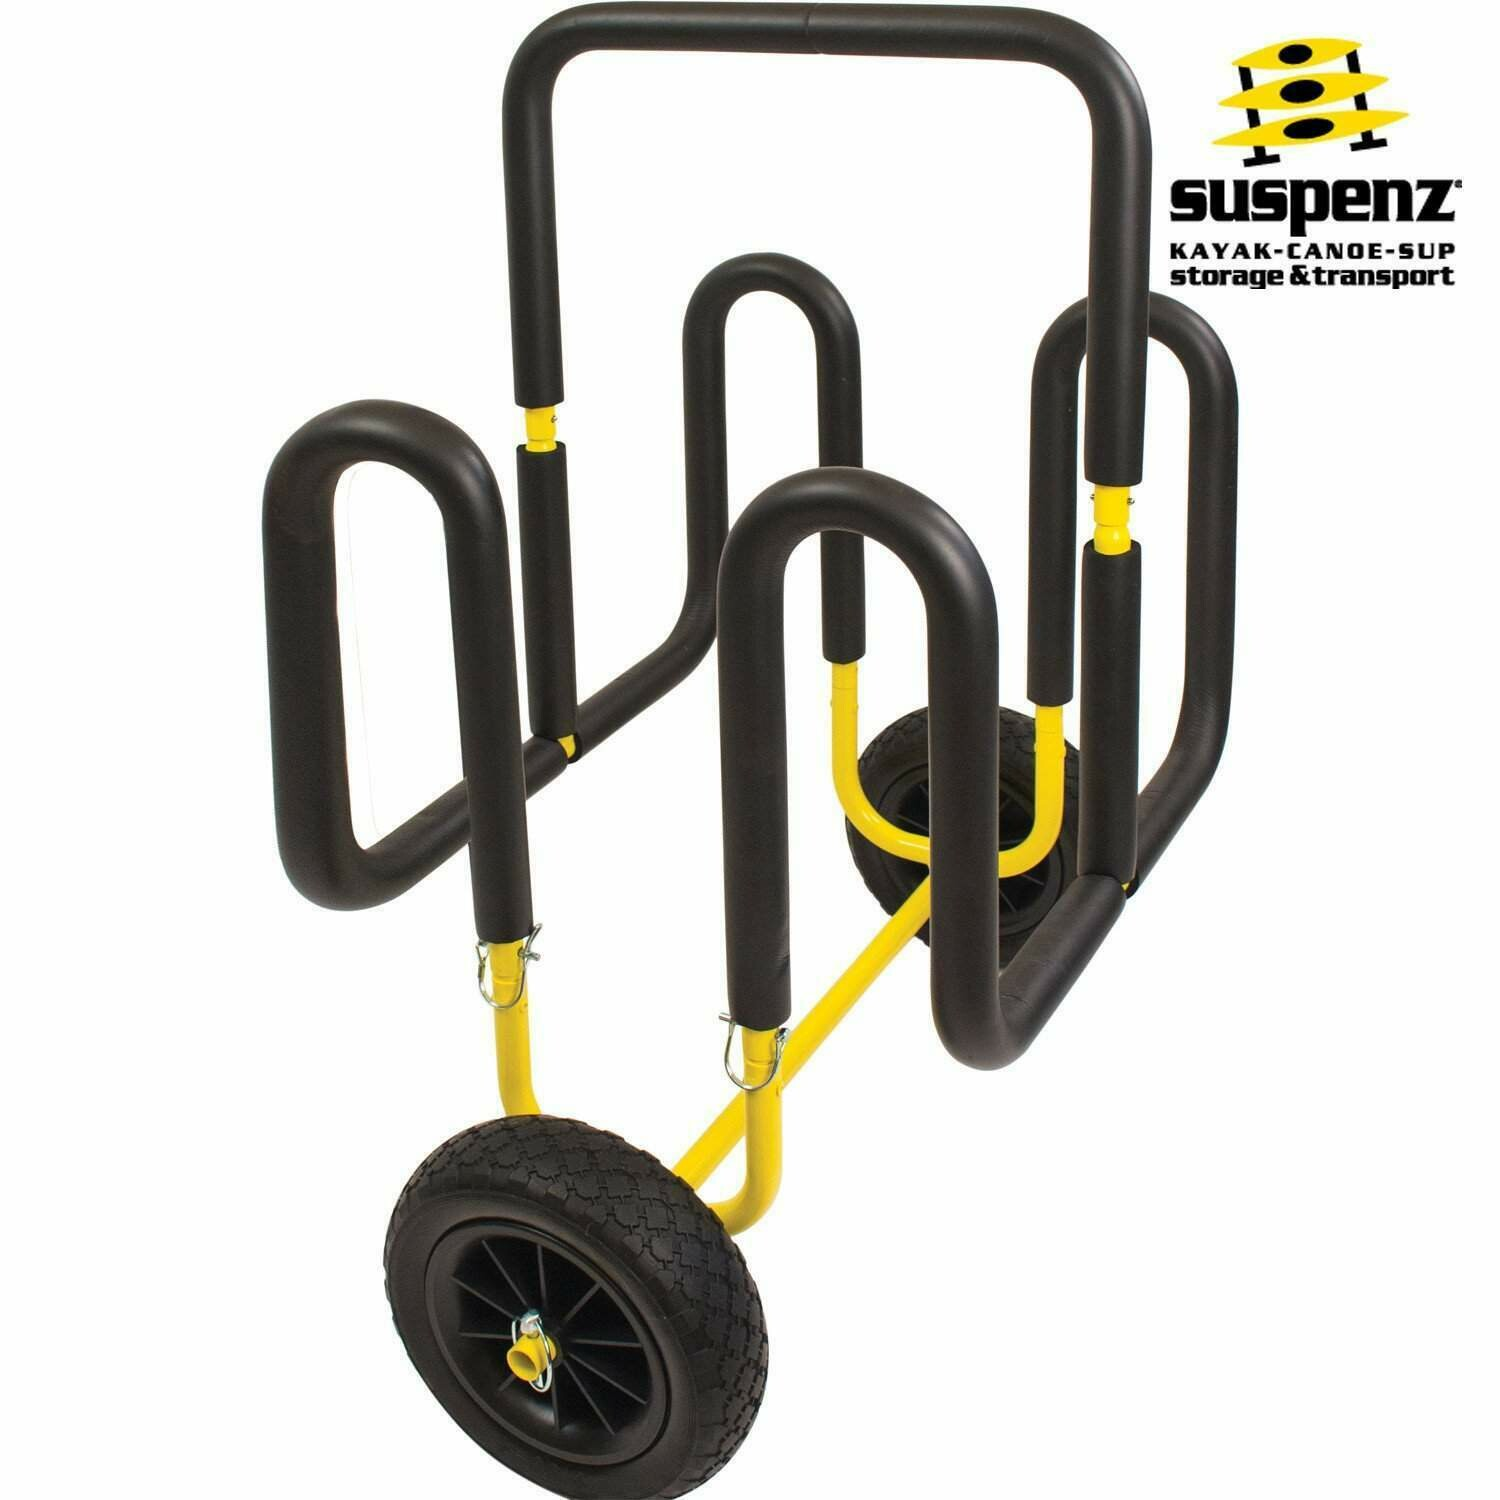 Suspenz Double Trouble Stand & Cart